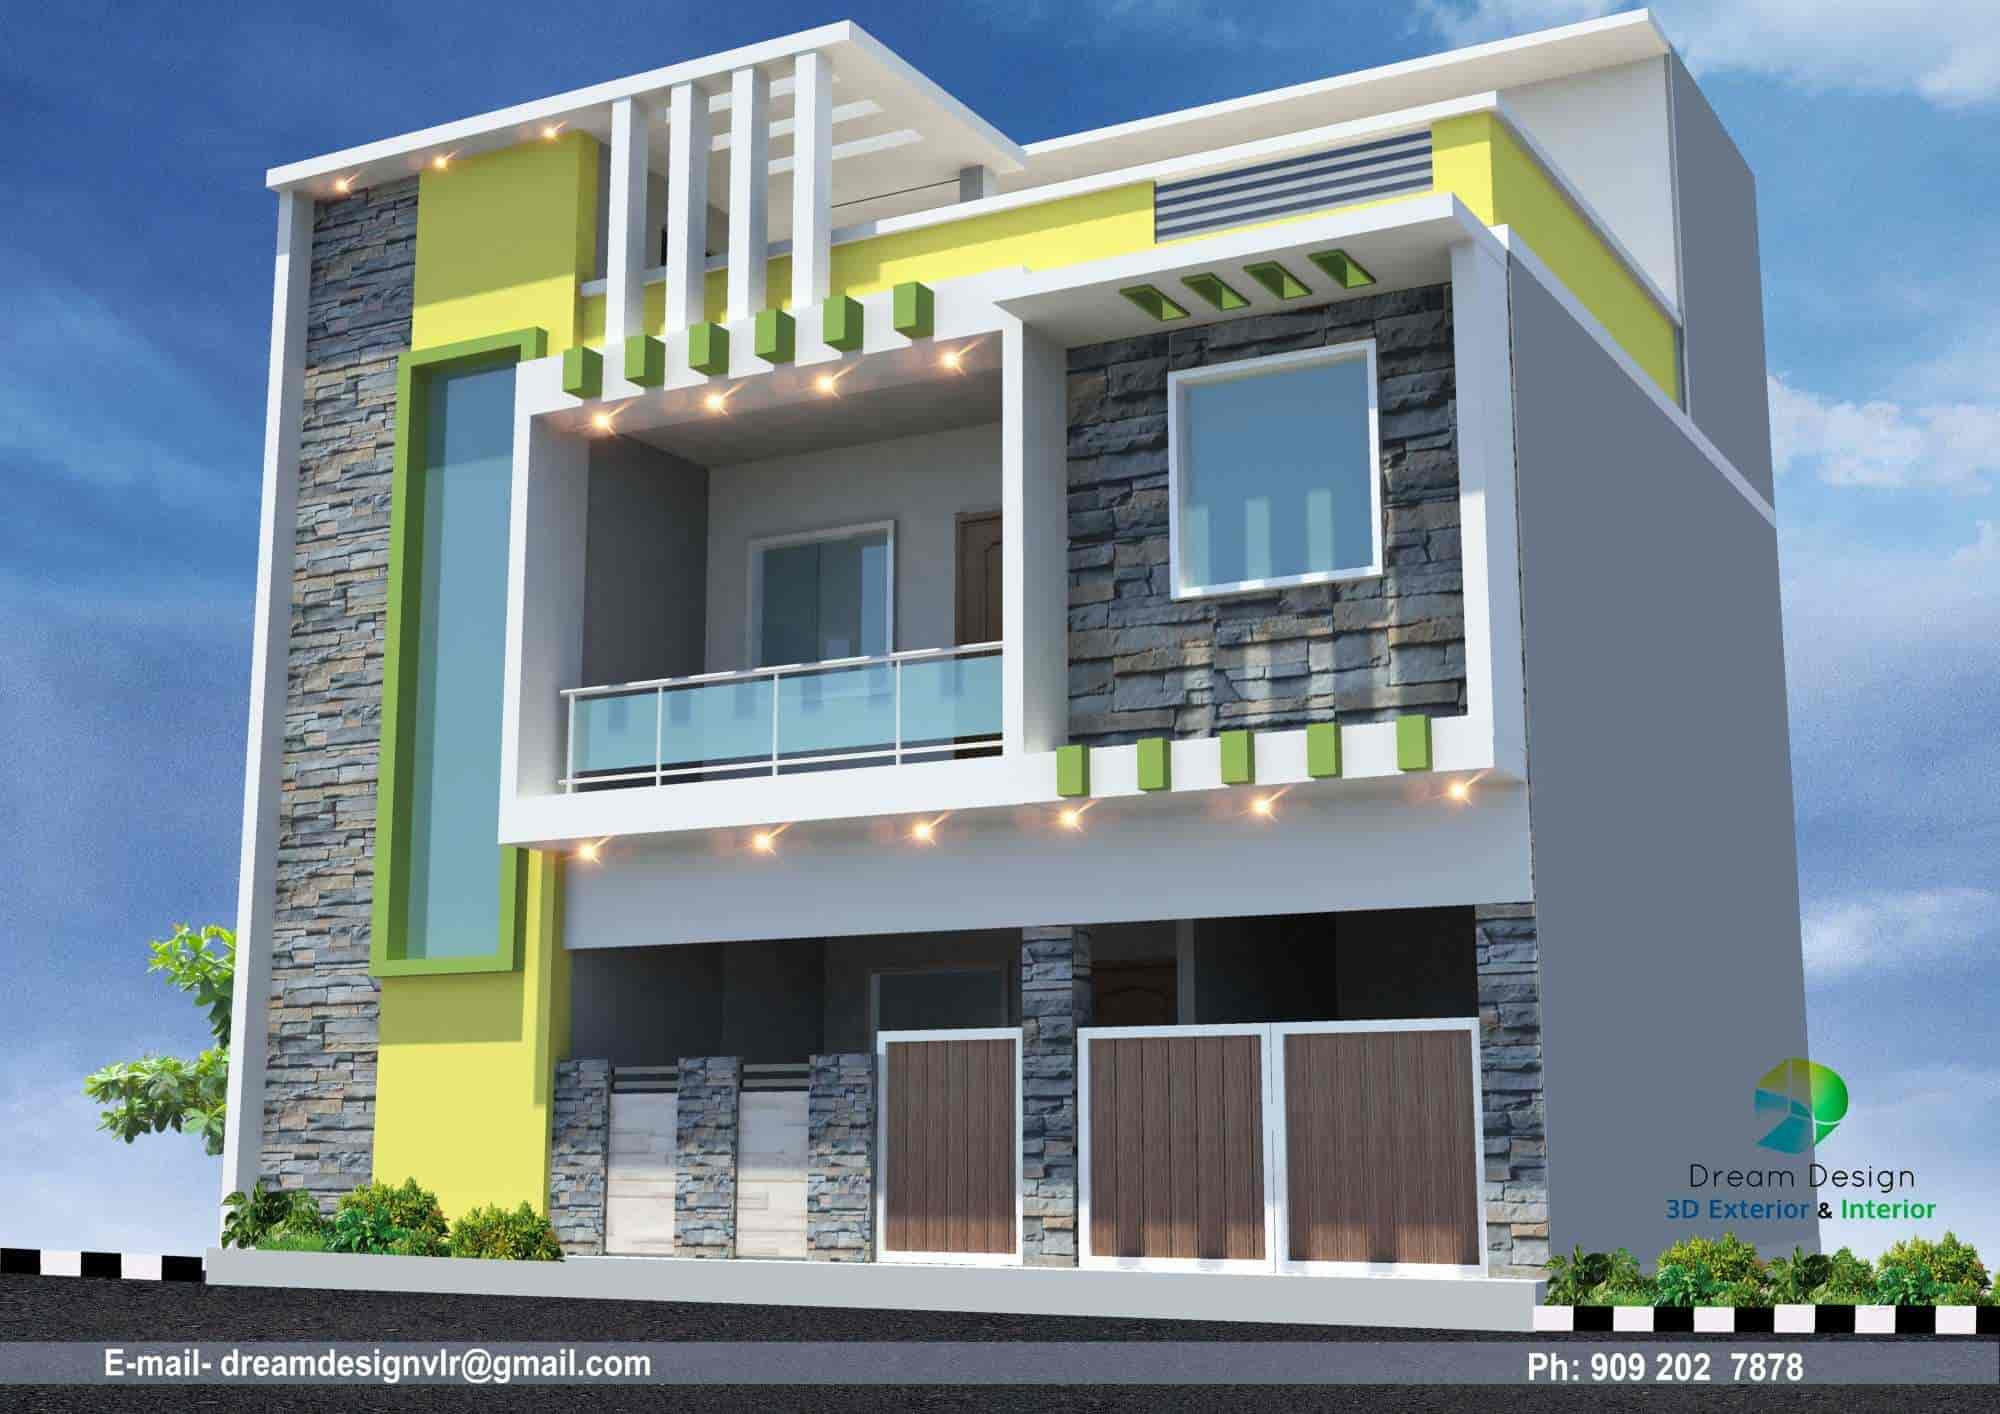 Dream Design Building Design Studio Photos Katpadi Vellore